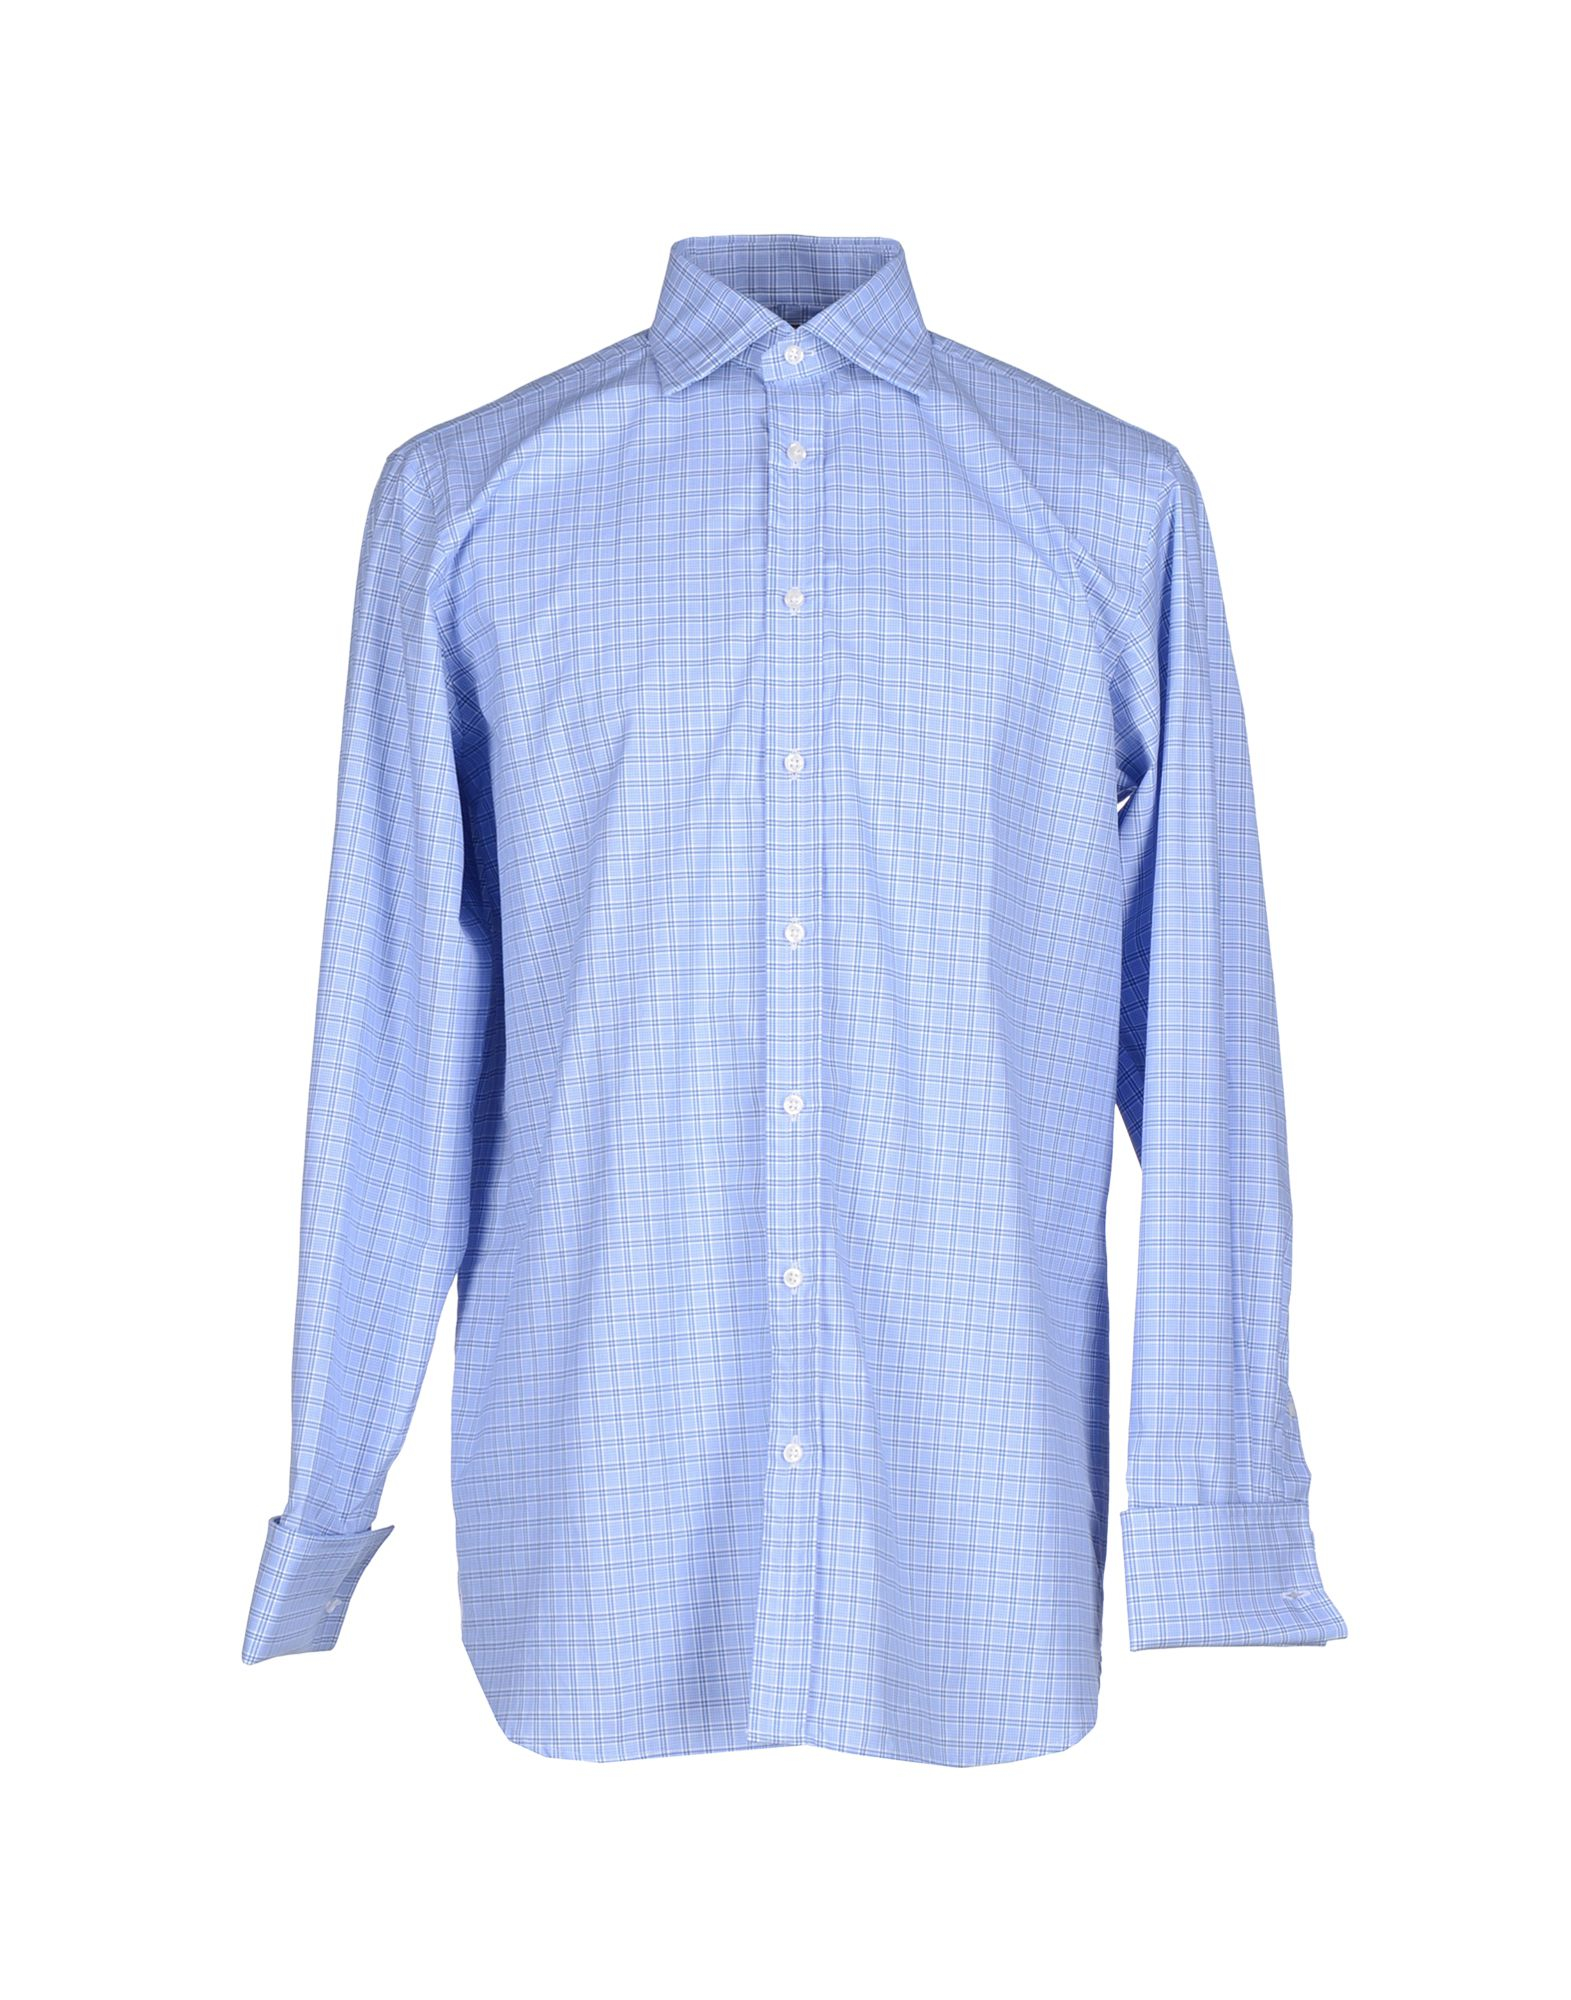 Thomas Pink Shirt In Blue For Men Lyst